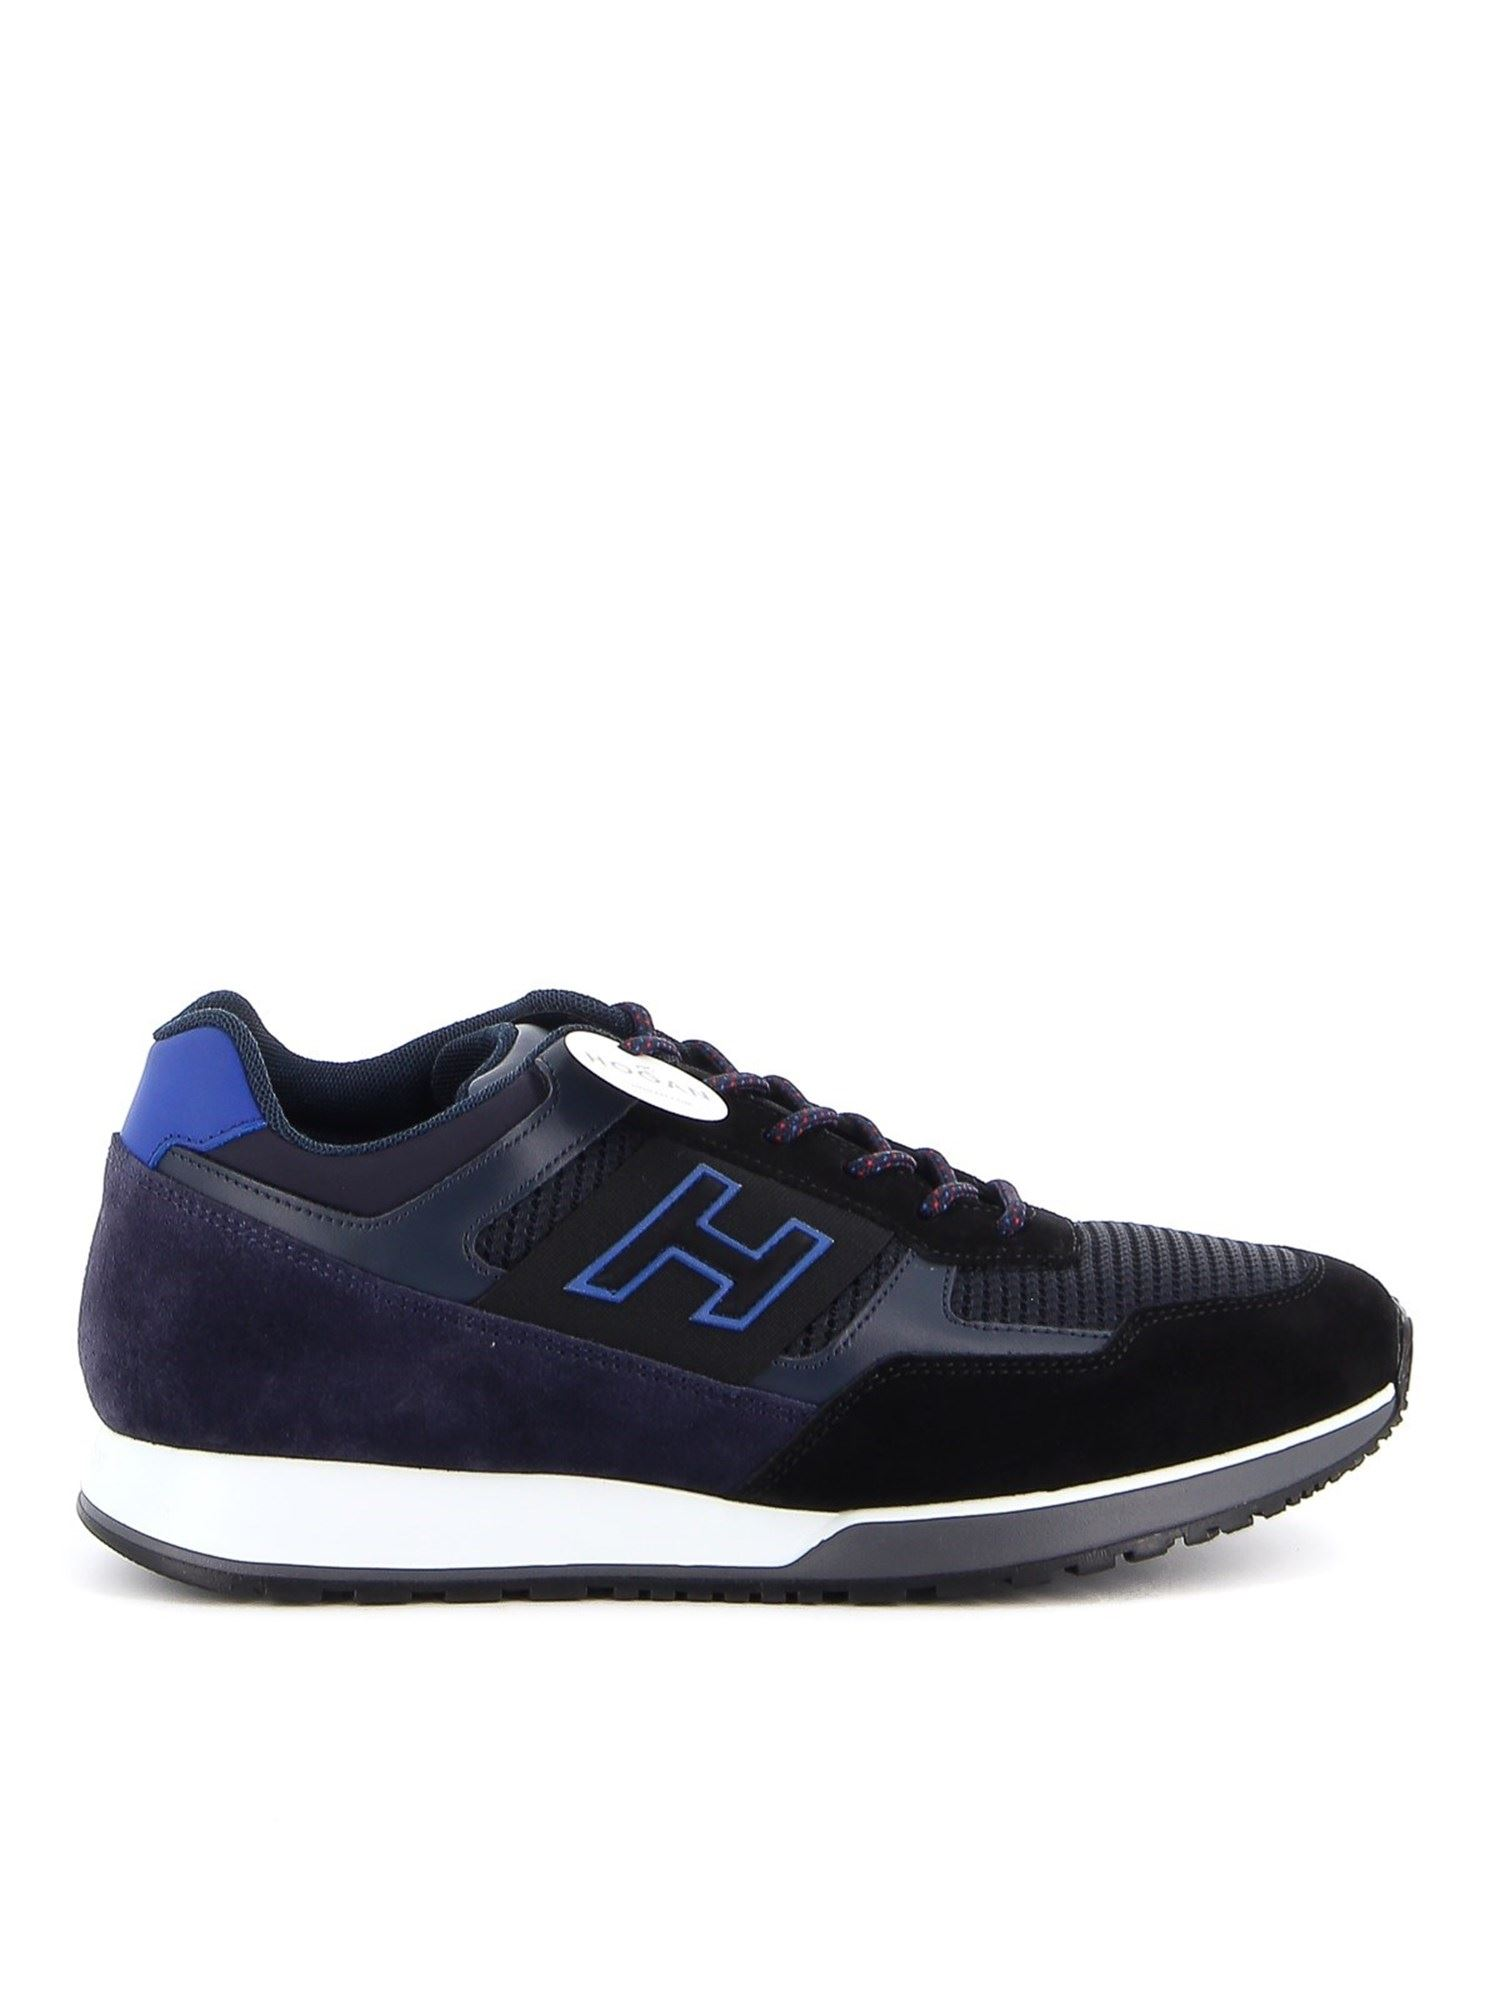 HOGAN H321 SNEAKERS IN BLUE